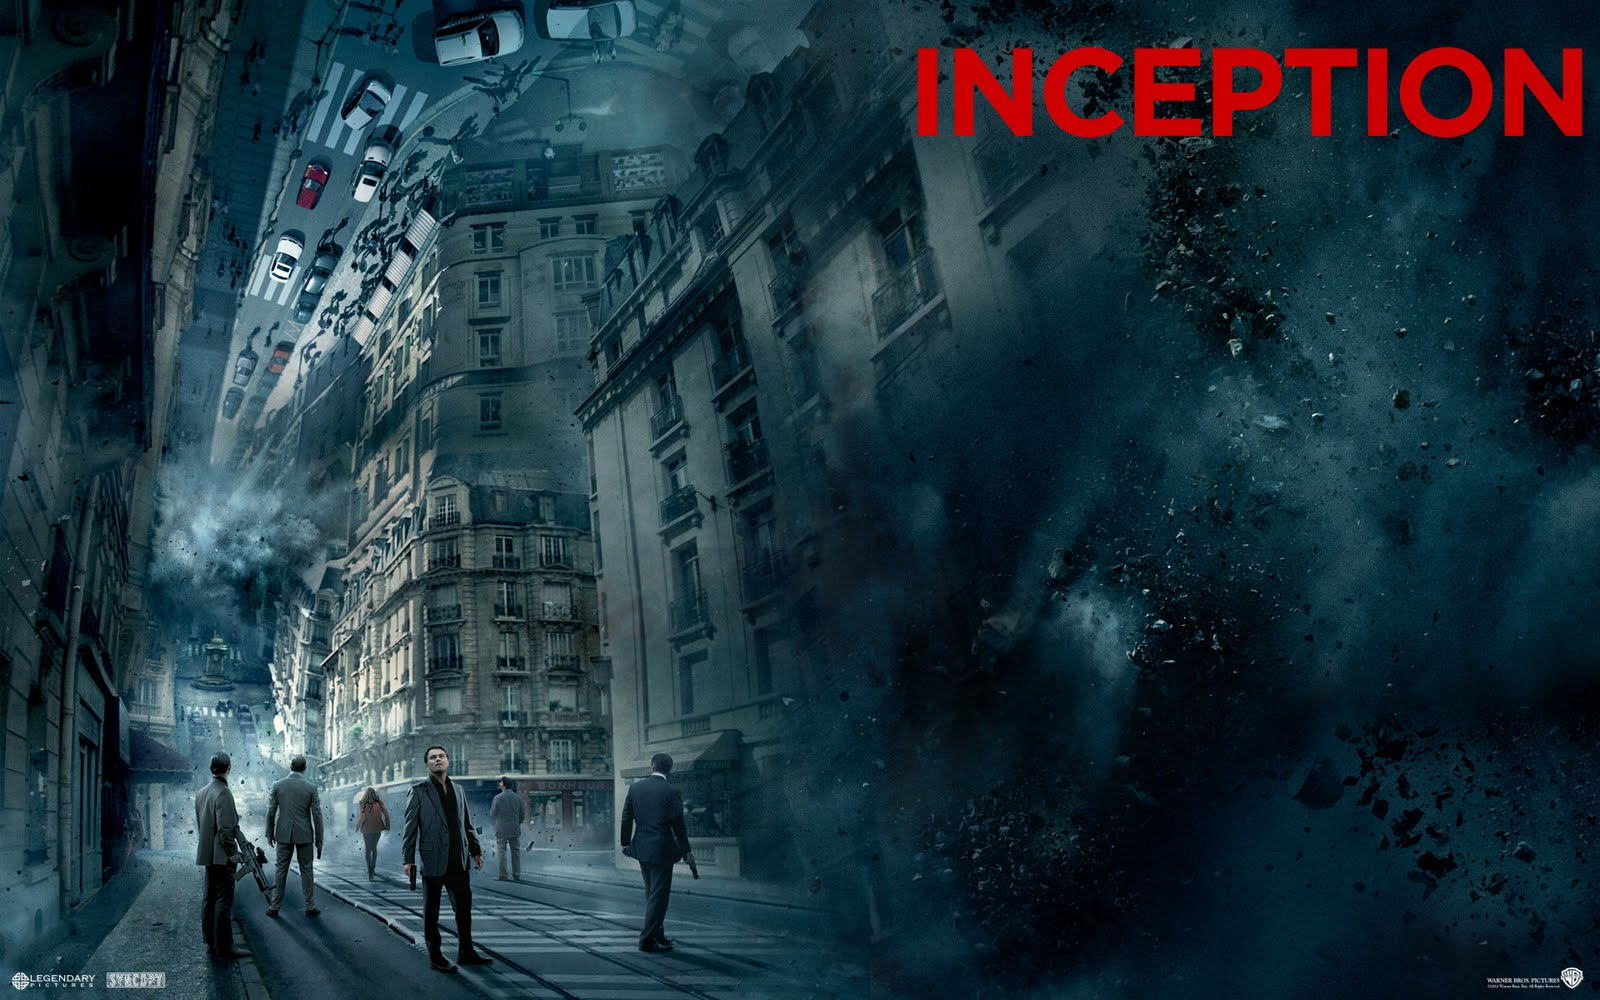 Movie Hd Wallpapers: 14 HD Inception Movie Wallpapers